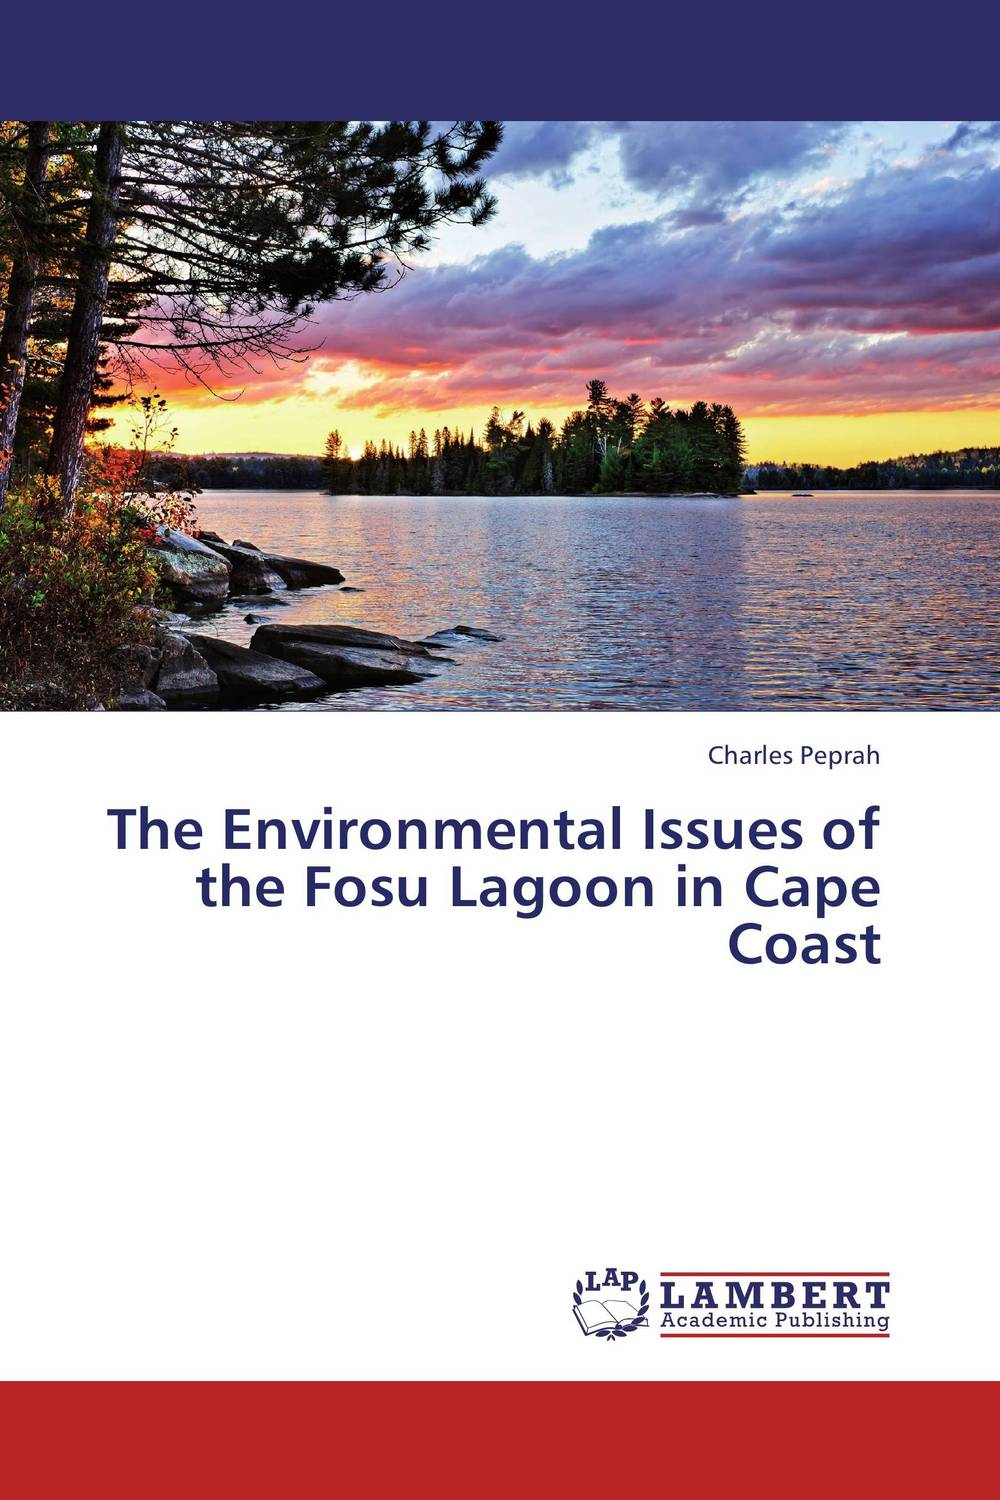 The Environmental Issues of the Fosu Lagoon in Cape Coast nutrient dynamics in a pristine subtropical lagoon estuarine system